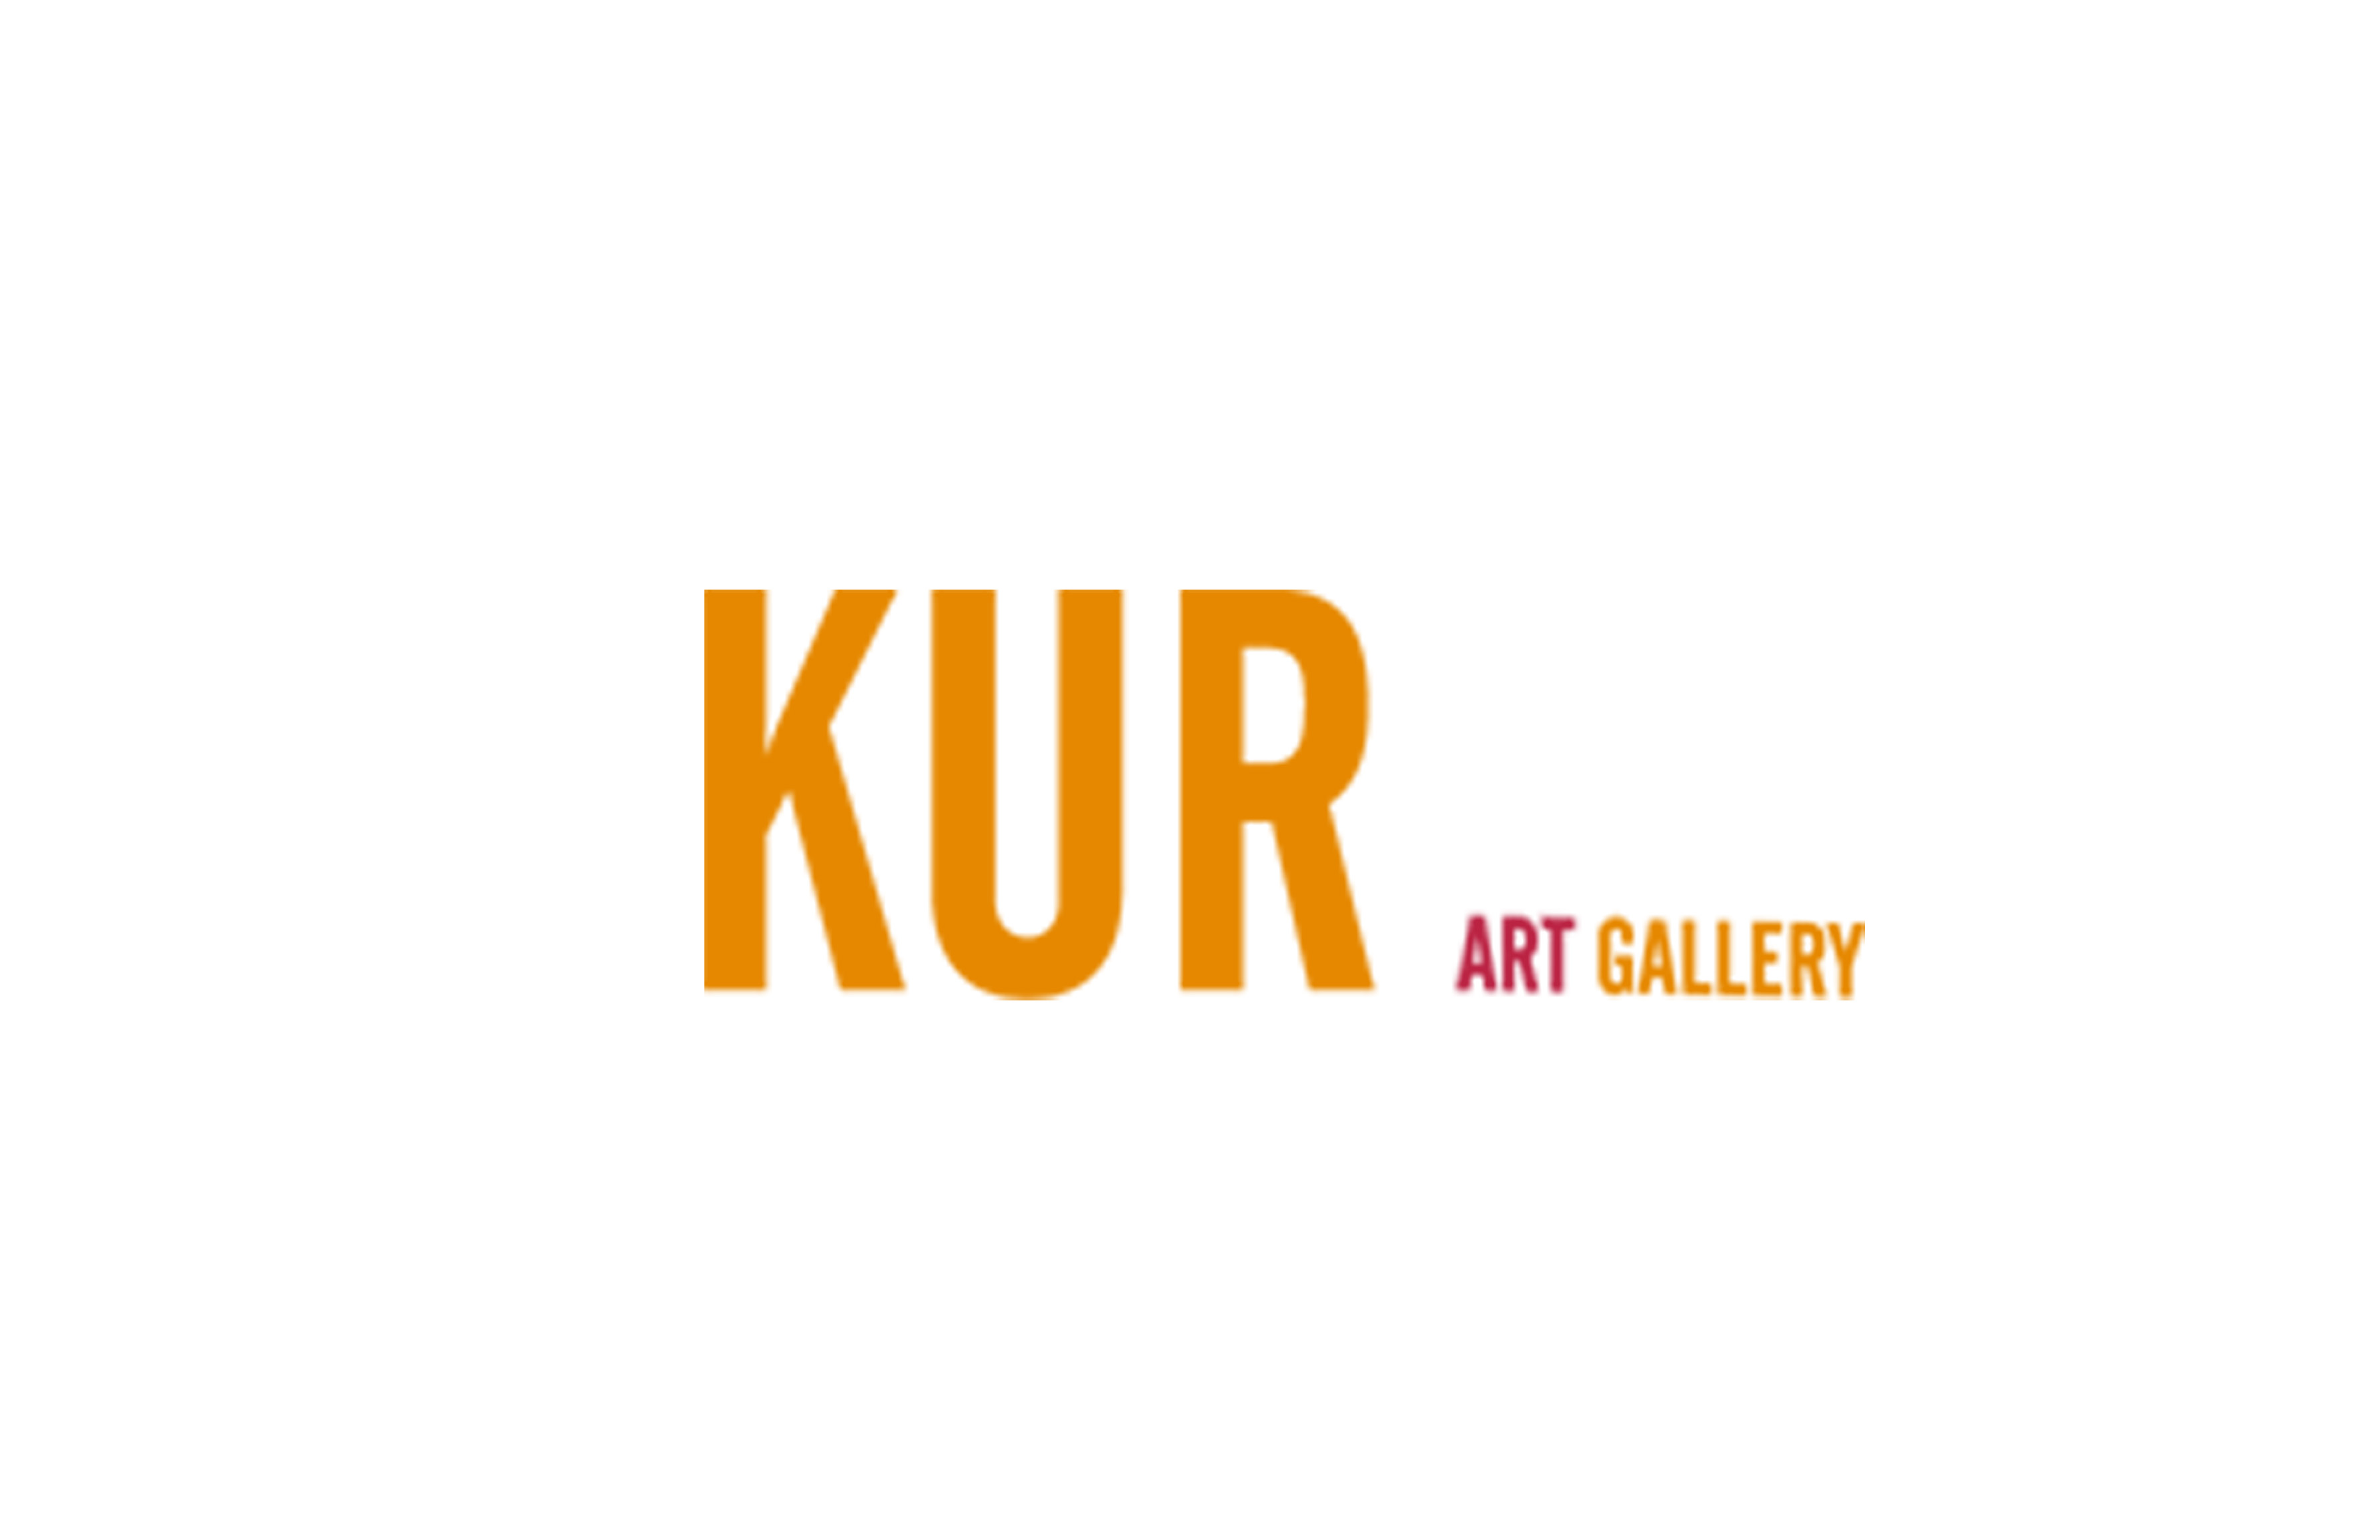 KUR Art Gallery